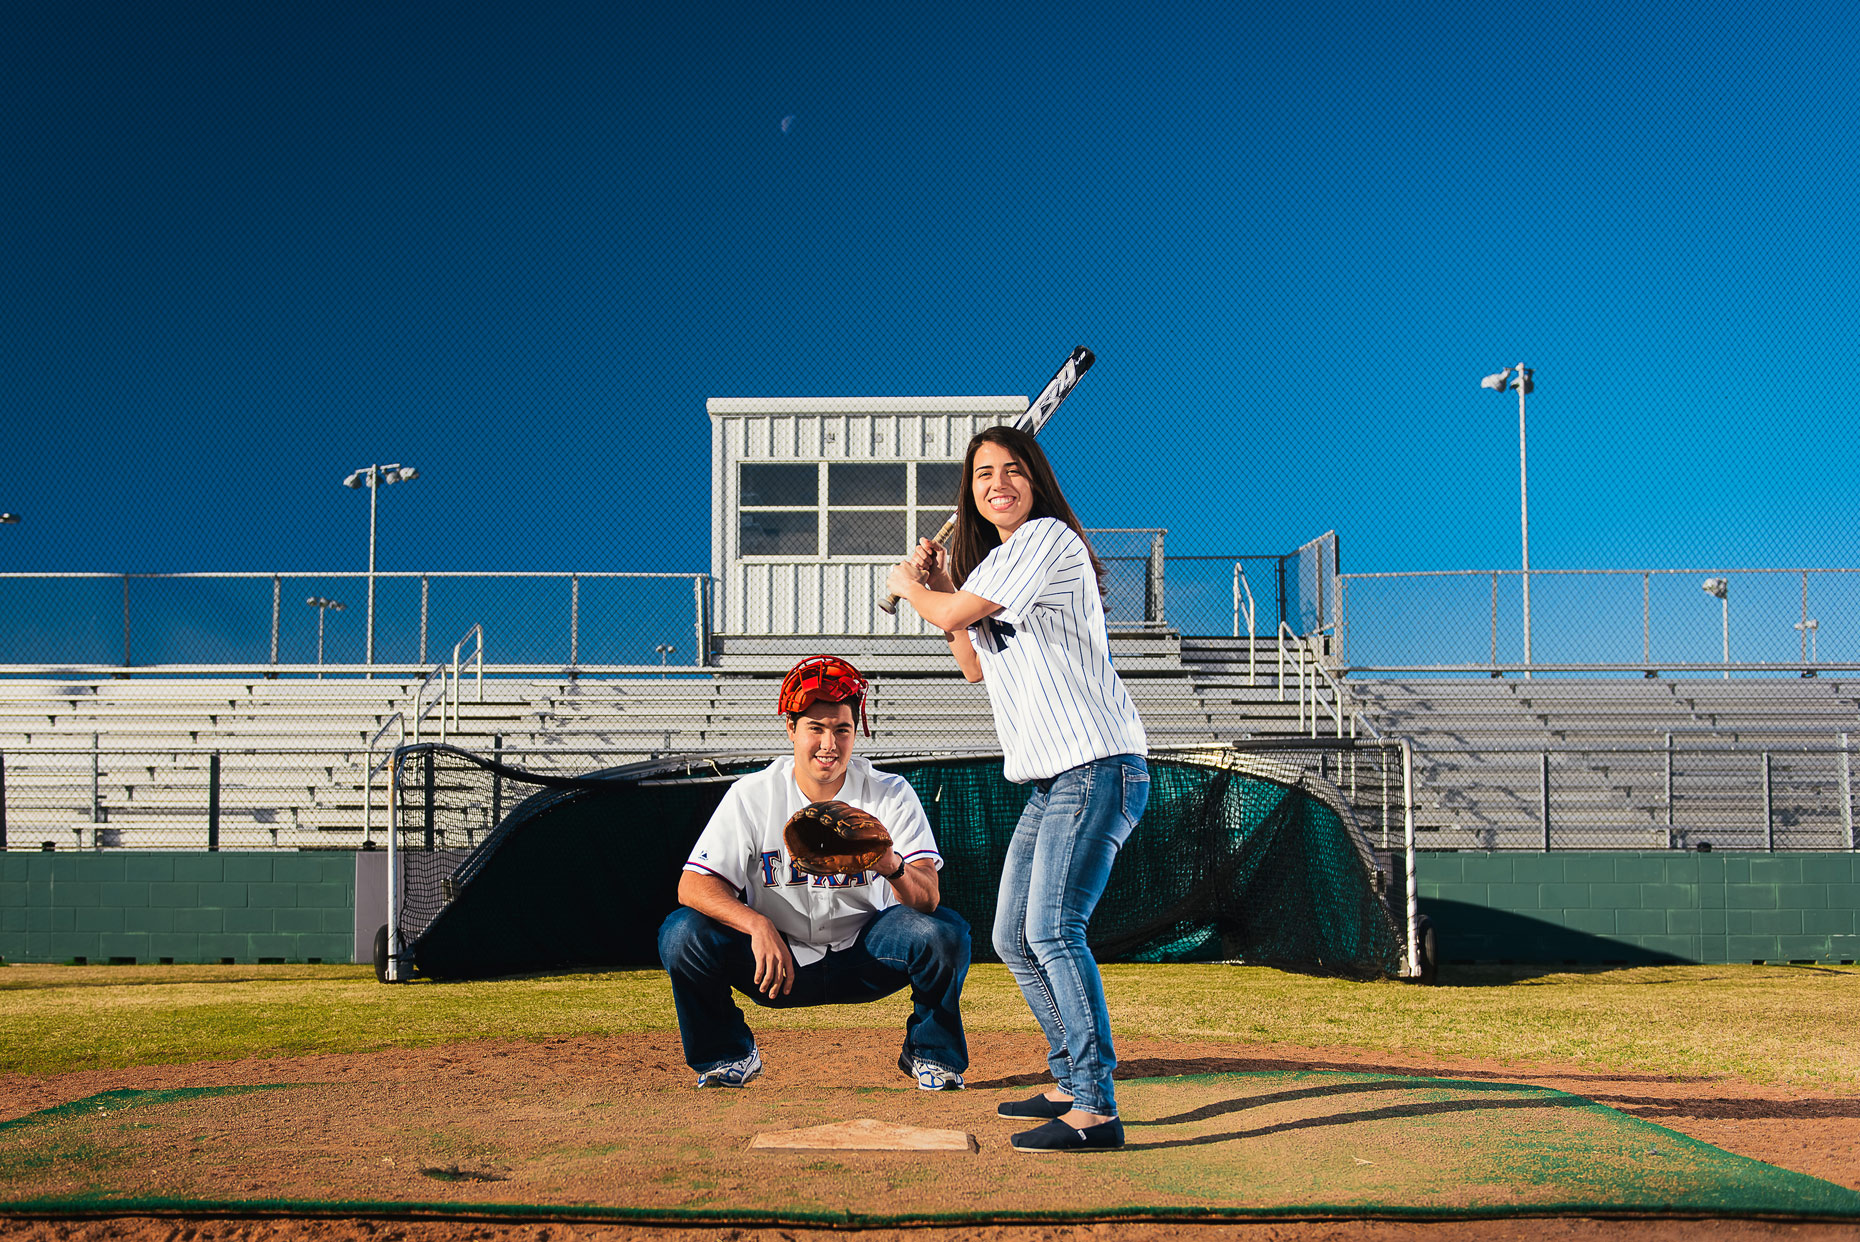 austin-wedding-photographer-baseball-engagement-photos-texas.jpg